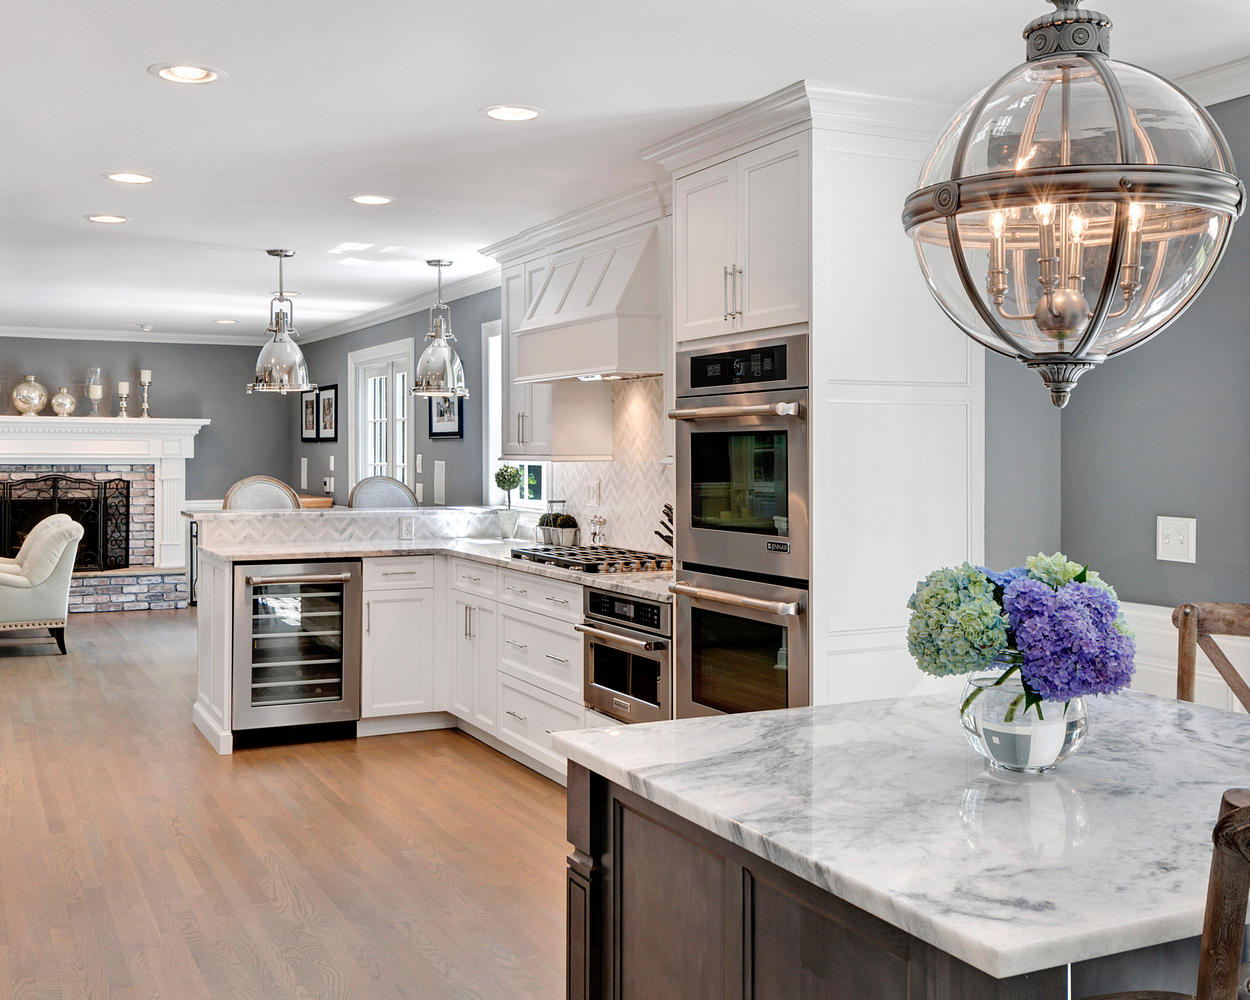 Modern Timeless Grey And White Kitchen Middletown New Jerseydesign Line regarding Inspirational Timeless Kitchen Design